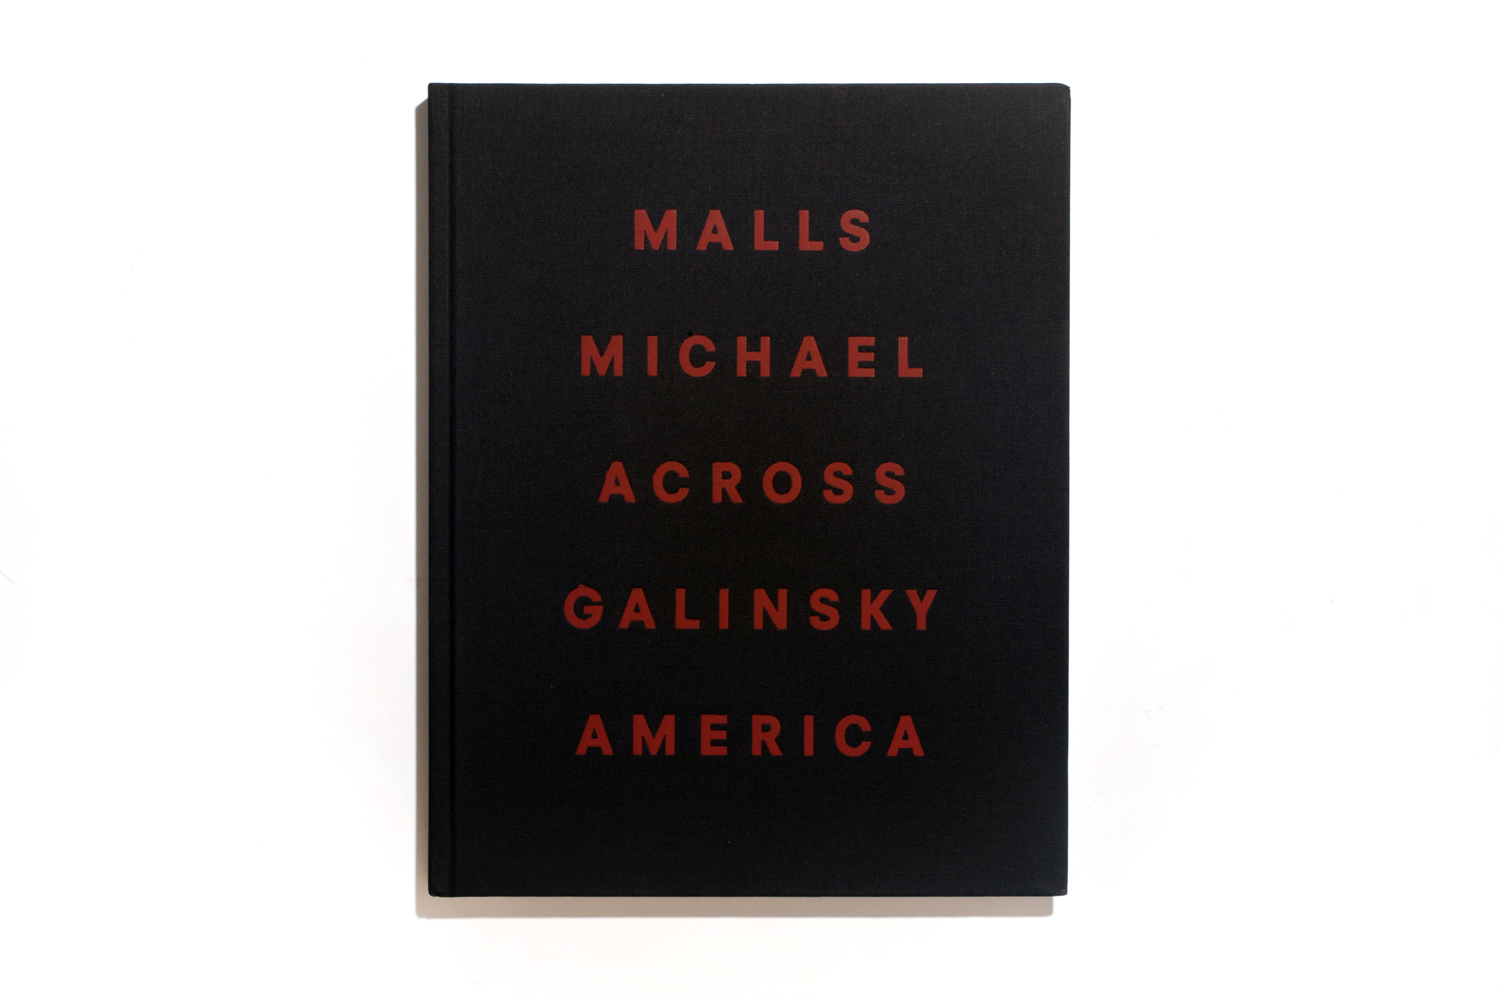 Malls Across America by Michael Galinsky, published by Steidl, selected by David Strettell, founder and owner of Dashwood Books.